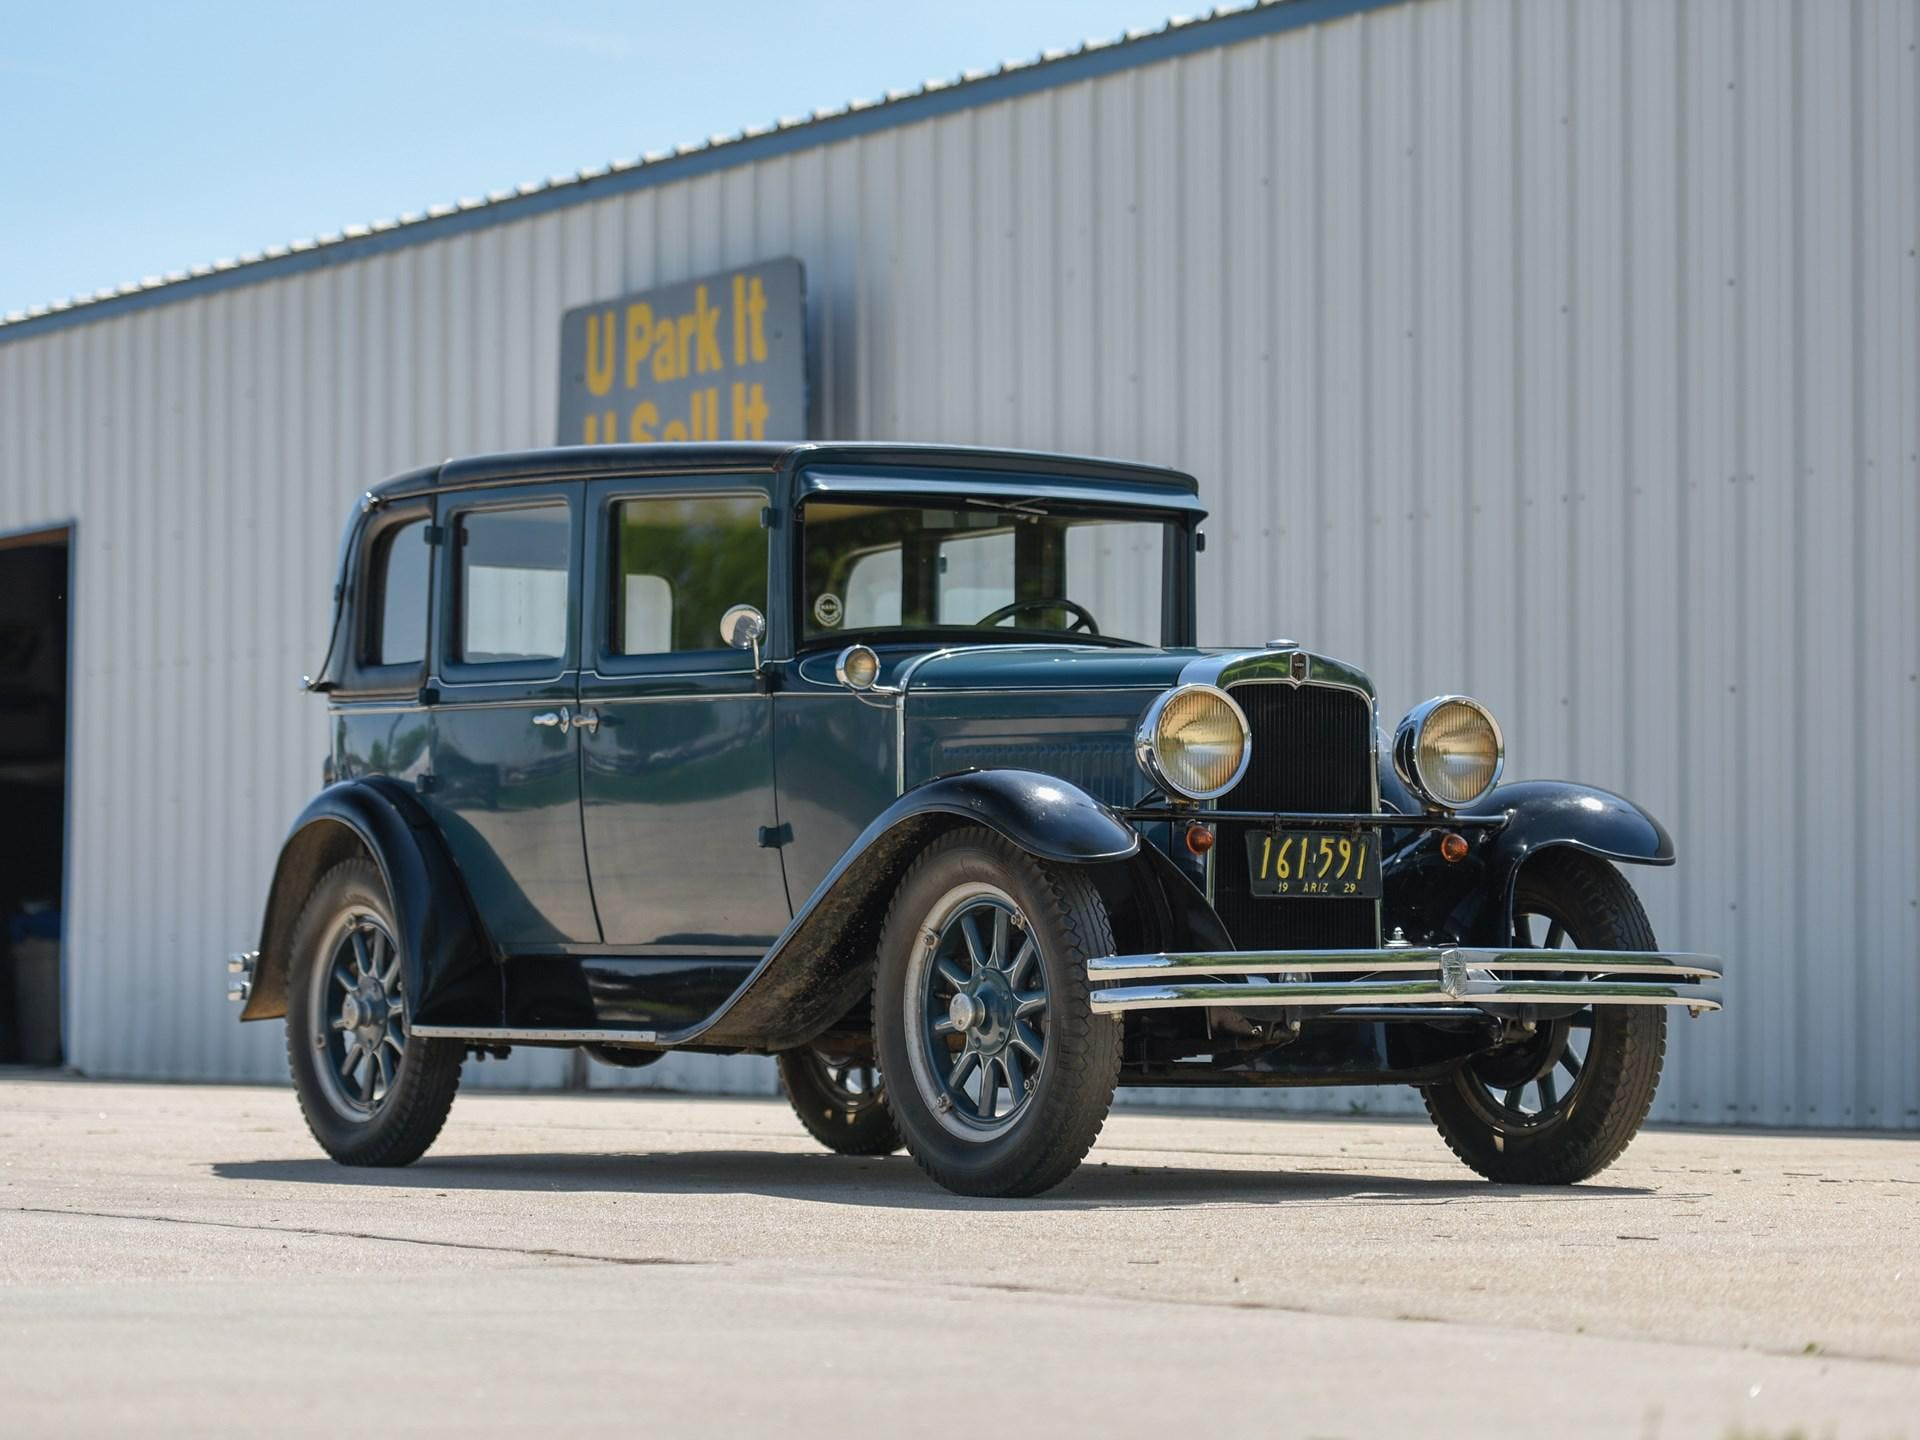 1929 Nash Series 420 Standard Six Landau Sedan